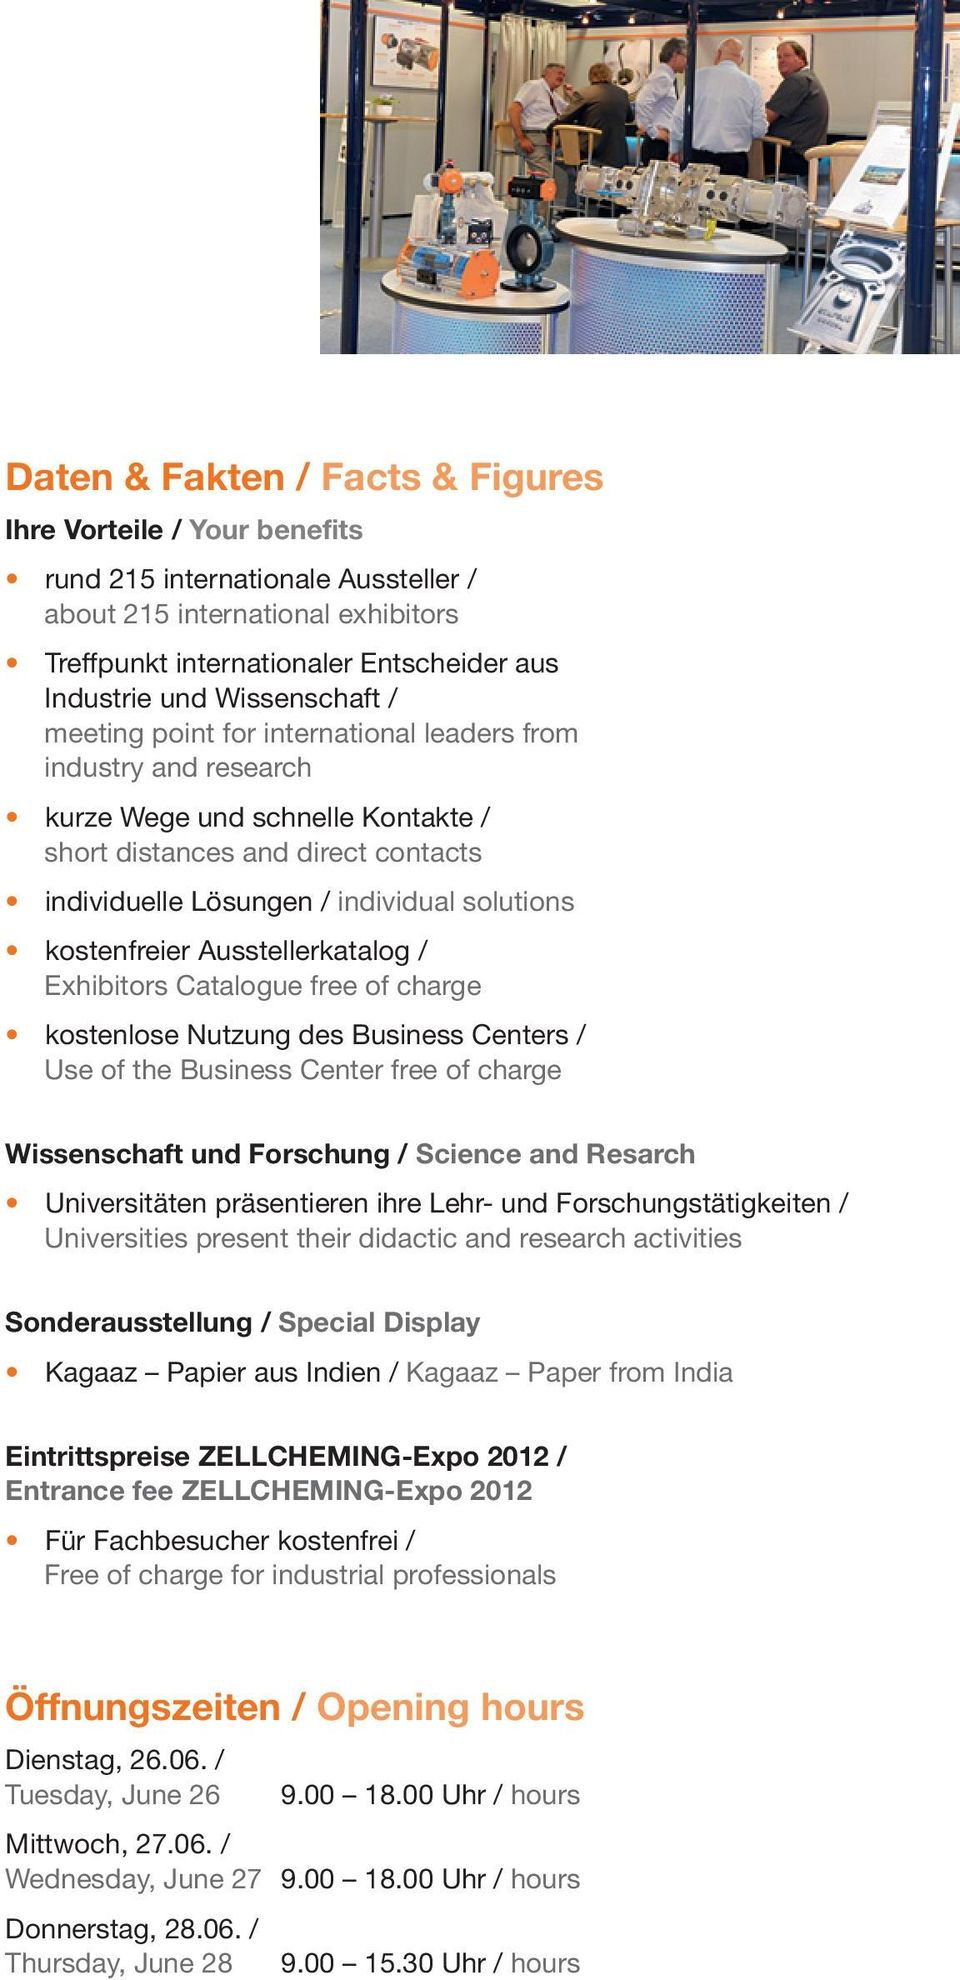 kostenfreier Ausstellerkatalog / Exhibitors Catalogue free of charge kostenlose Nutzung des Business Centers / Use of the Business Center free of charge Wissenschaft und Forschung / Science and